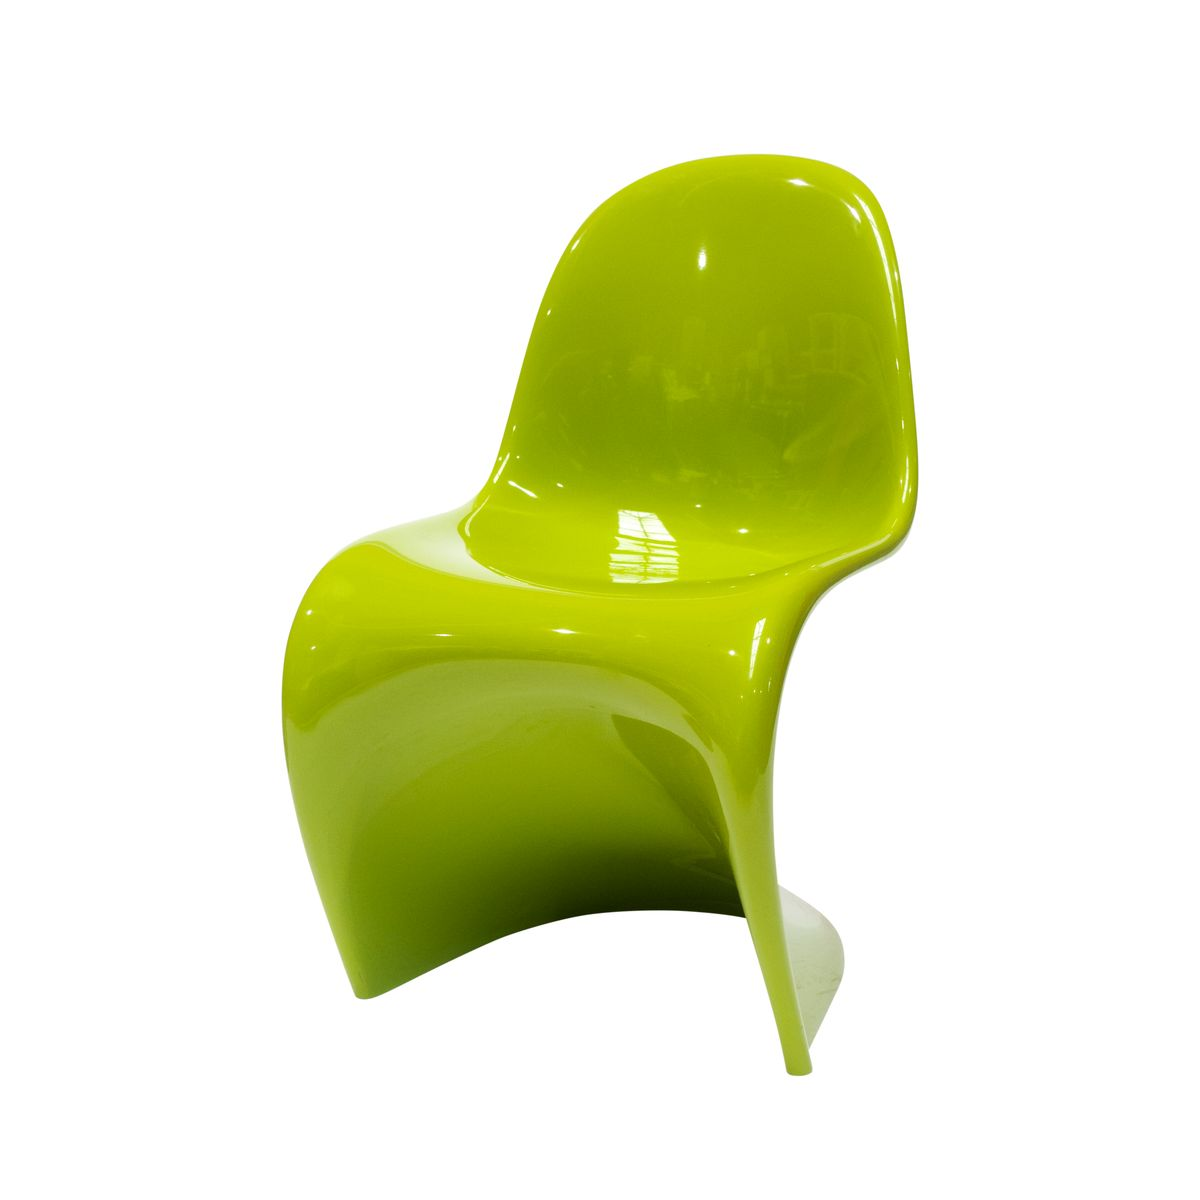 Great The Panton Chair In Chartreuse By Verner Panton For Vitra, 2006 For Sale At  Pamono